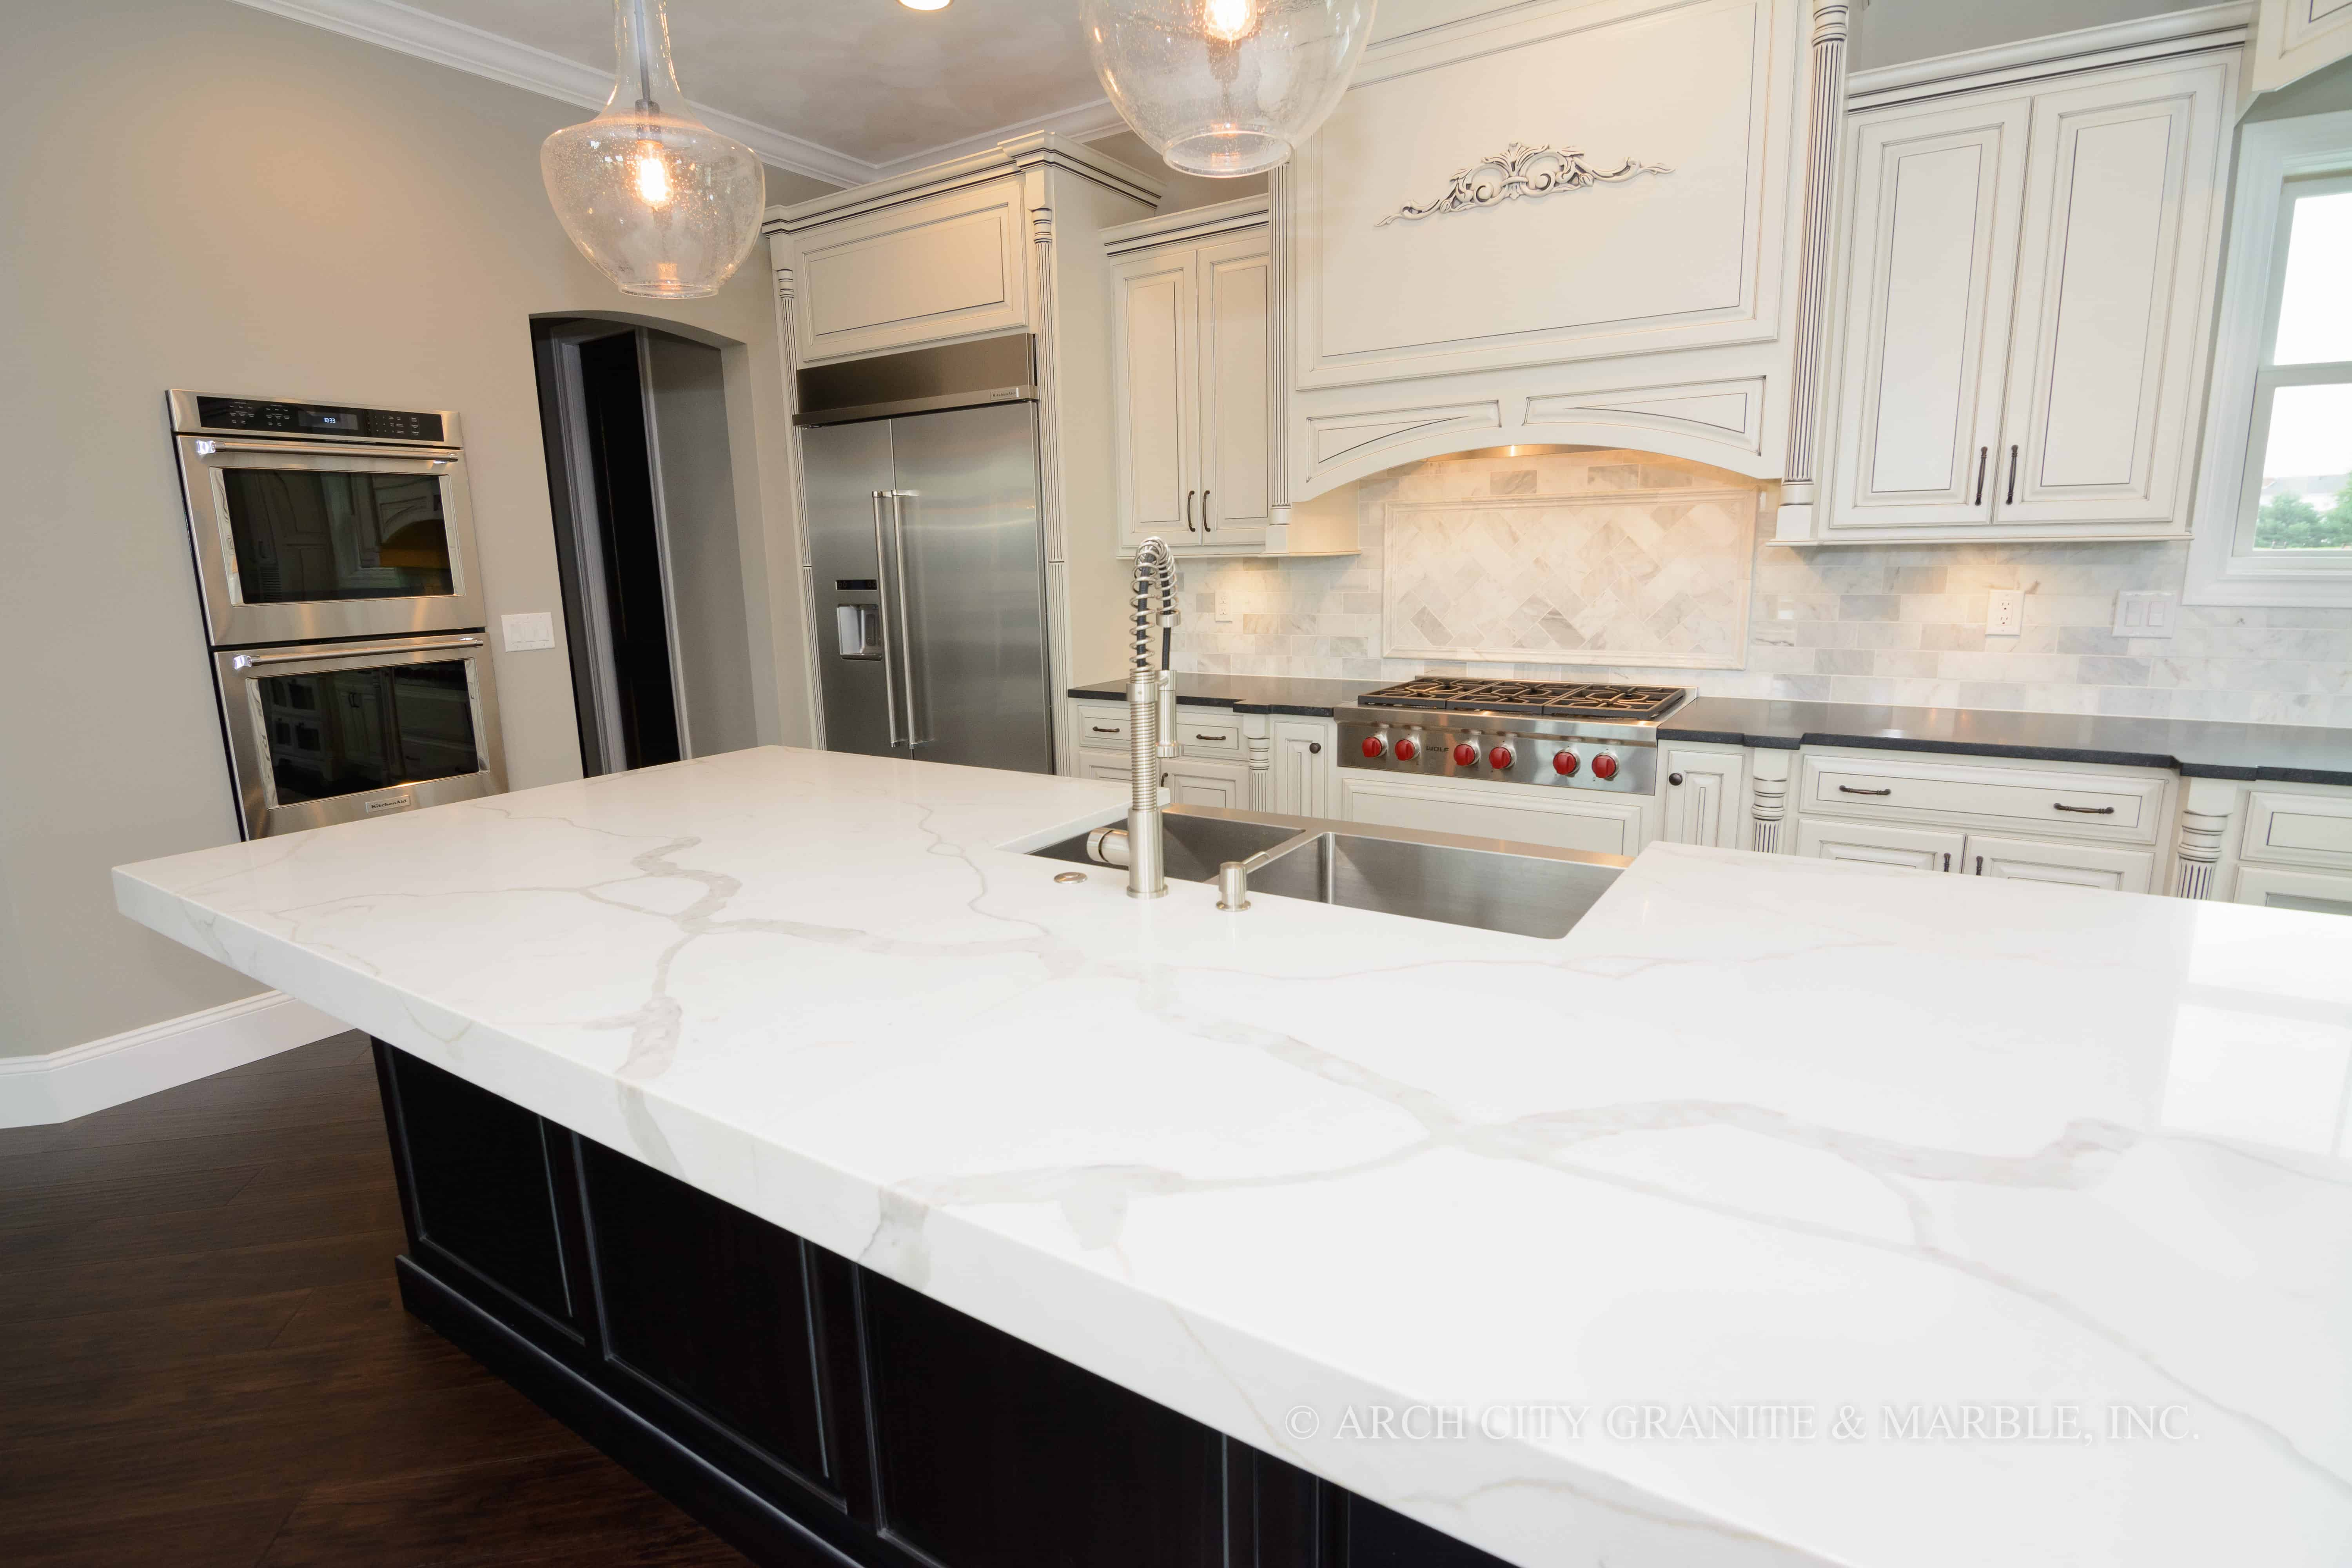 marble worktops, white marble